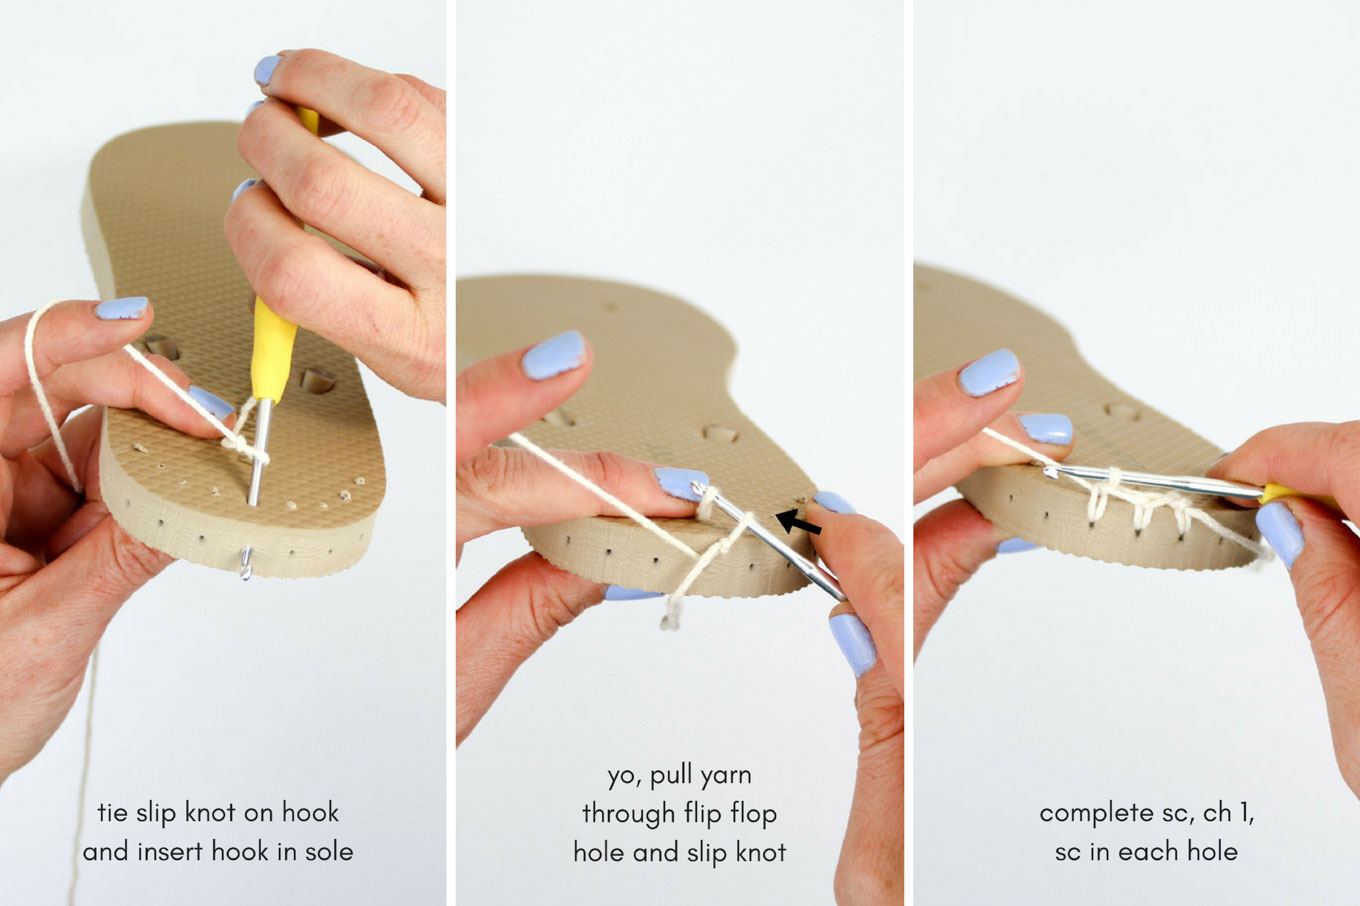 Photo and video tutorial: How to crochet on flip flops (thongs) to make slippers and functional shoes.